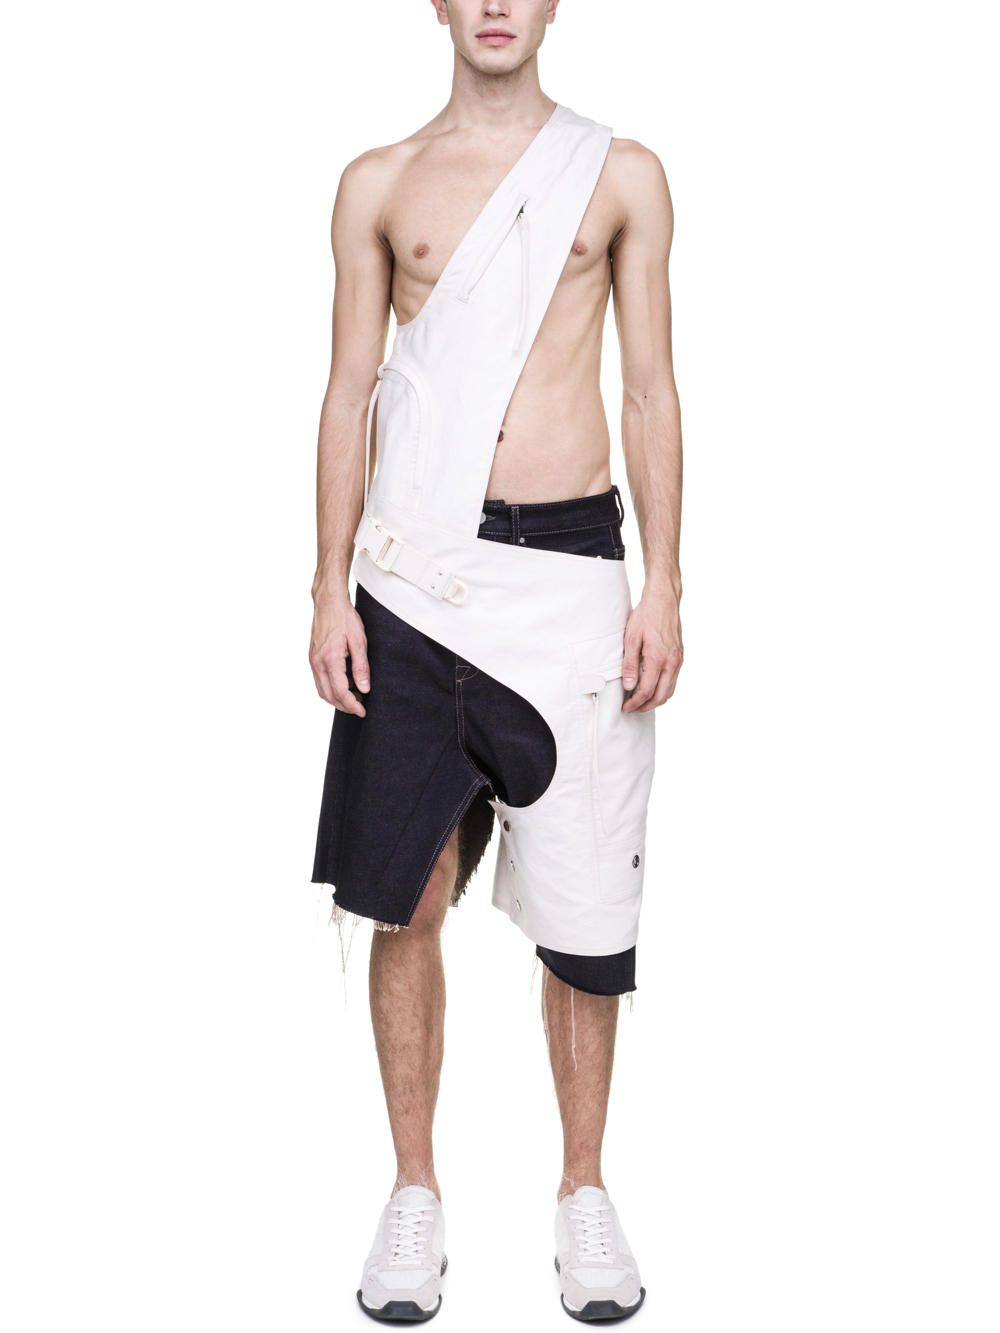 RICK OWENS OFF-THE-RUNWAY CROSS CARGO CHAP IN NATURAL LIGHT